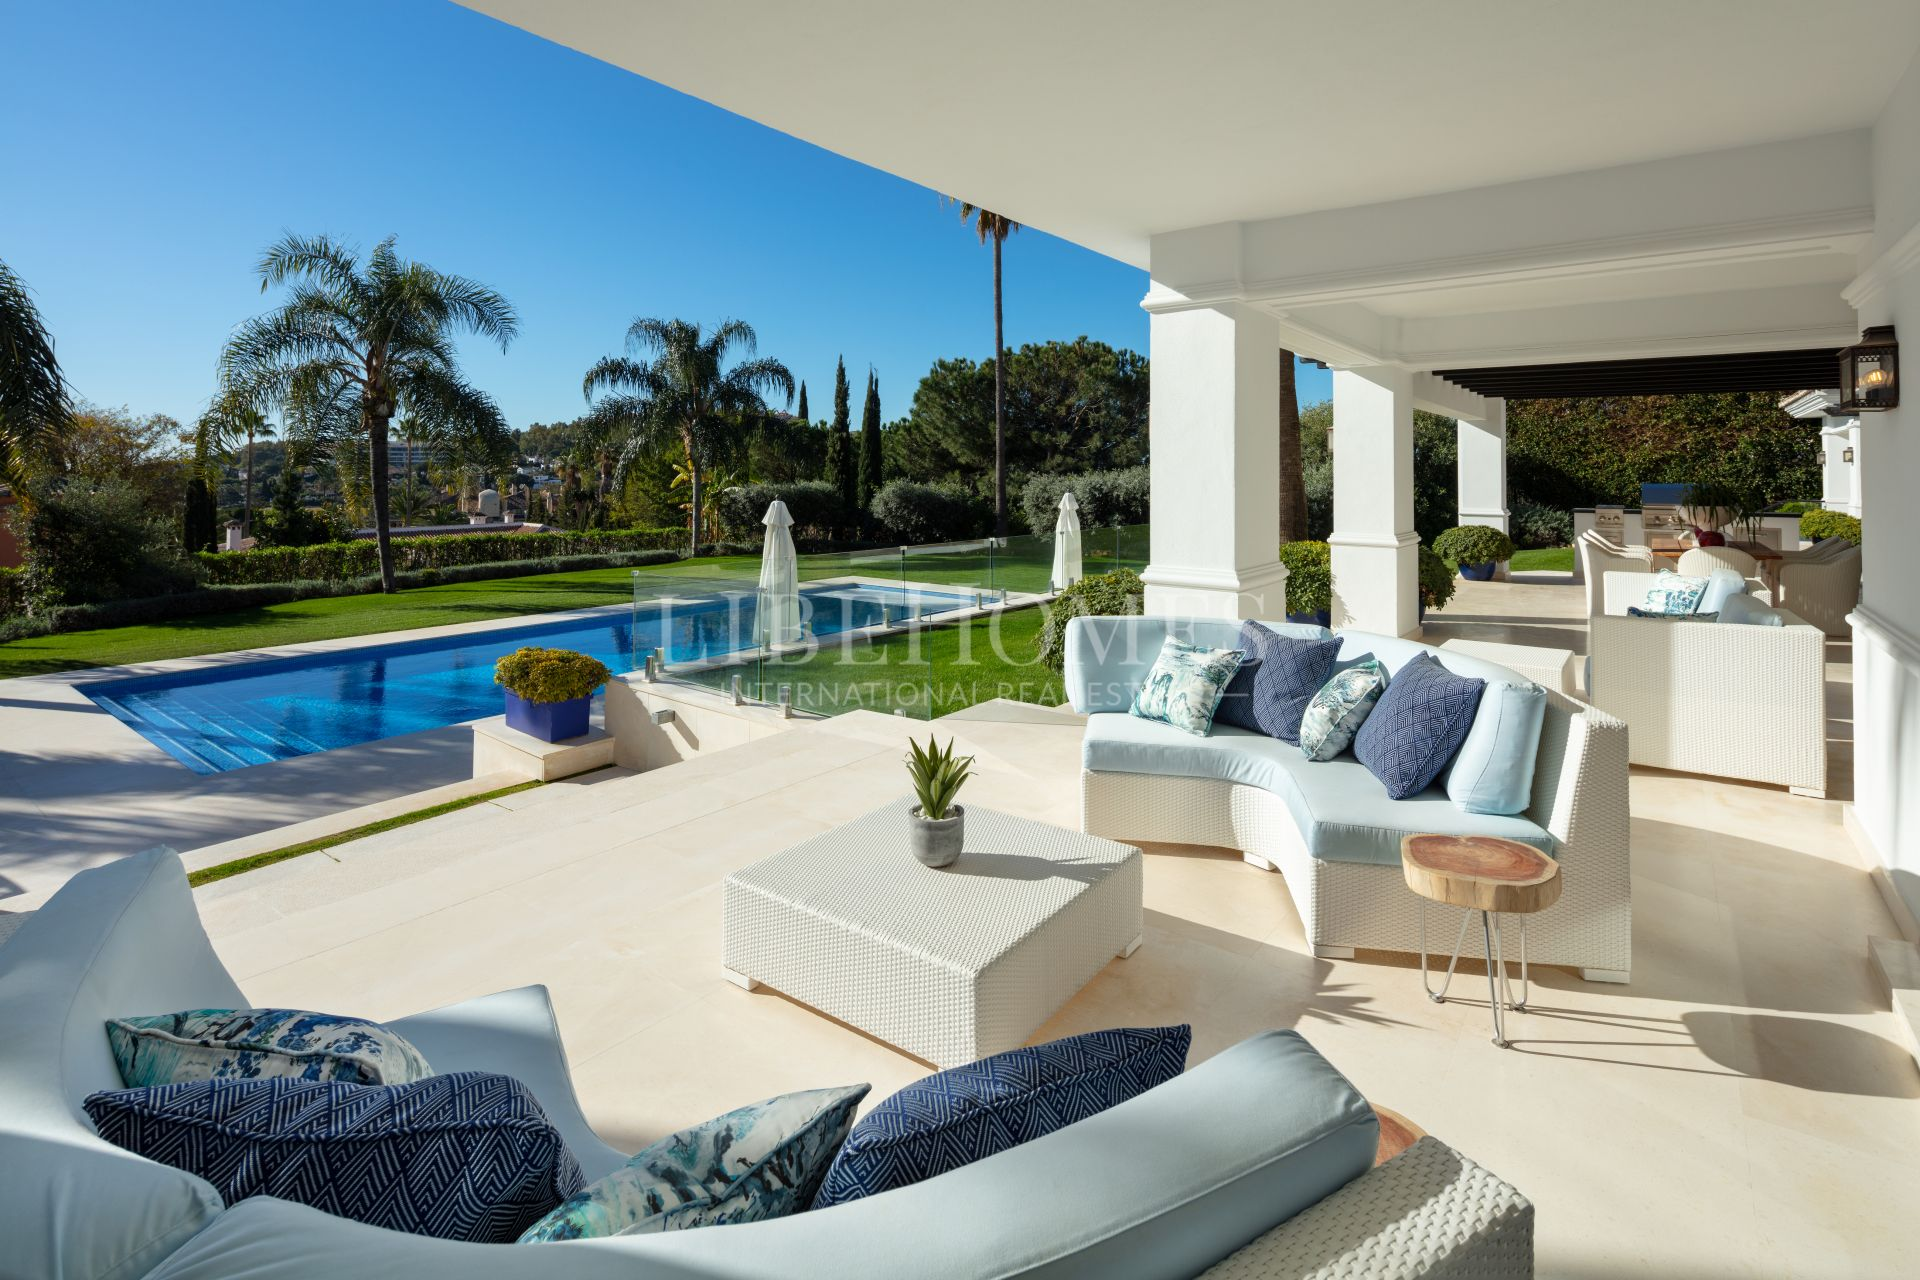 Stunning, fully renovated villa in La Cerquilla, Golf Valley, Marbella